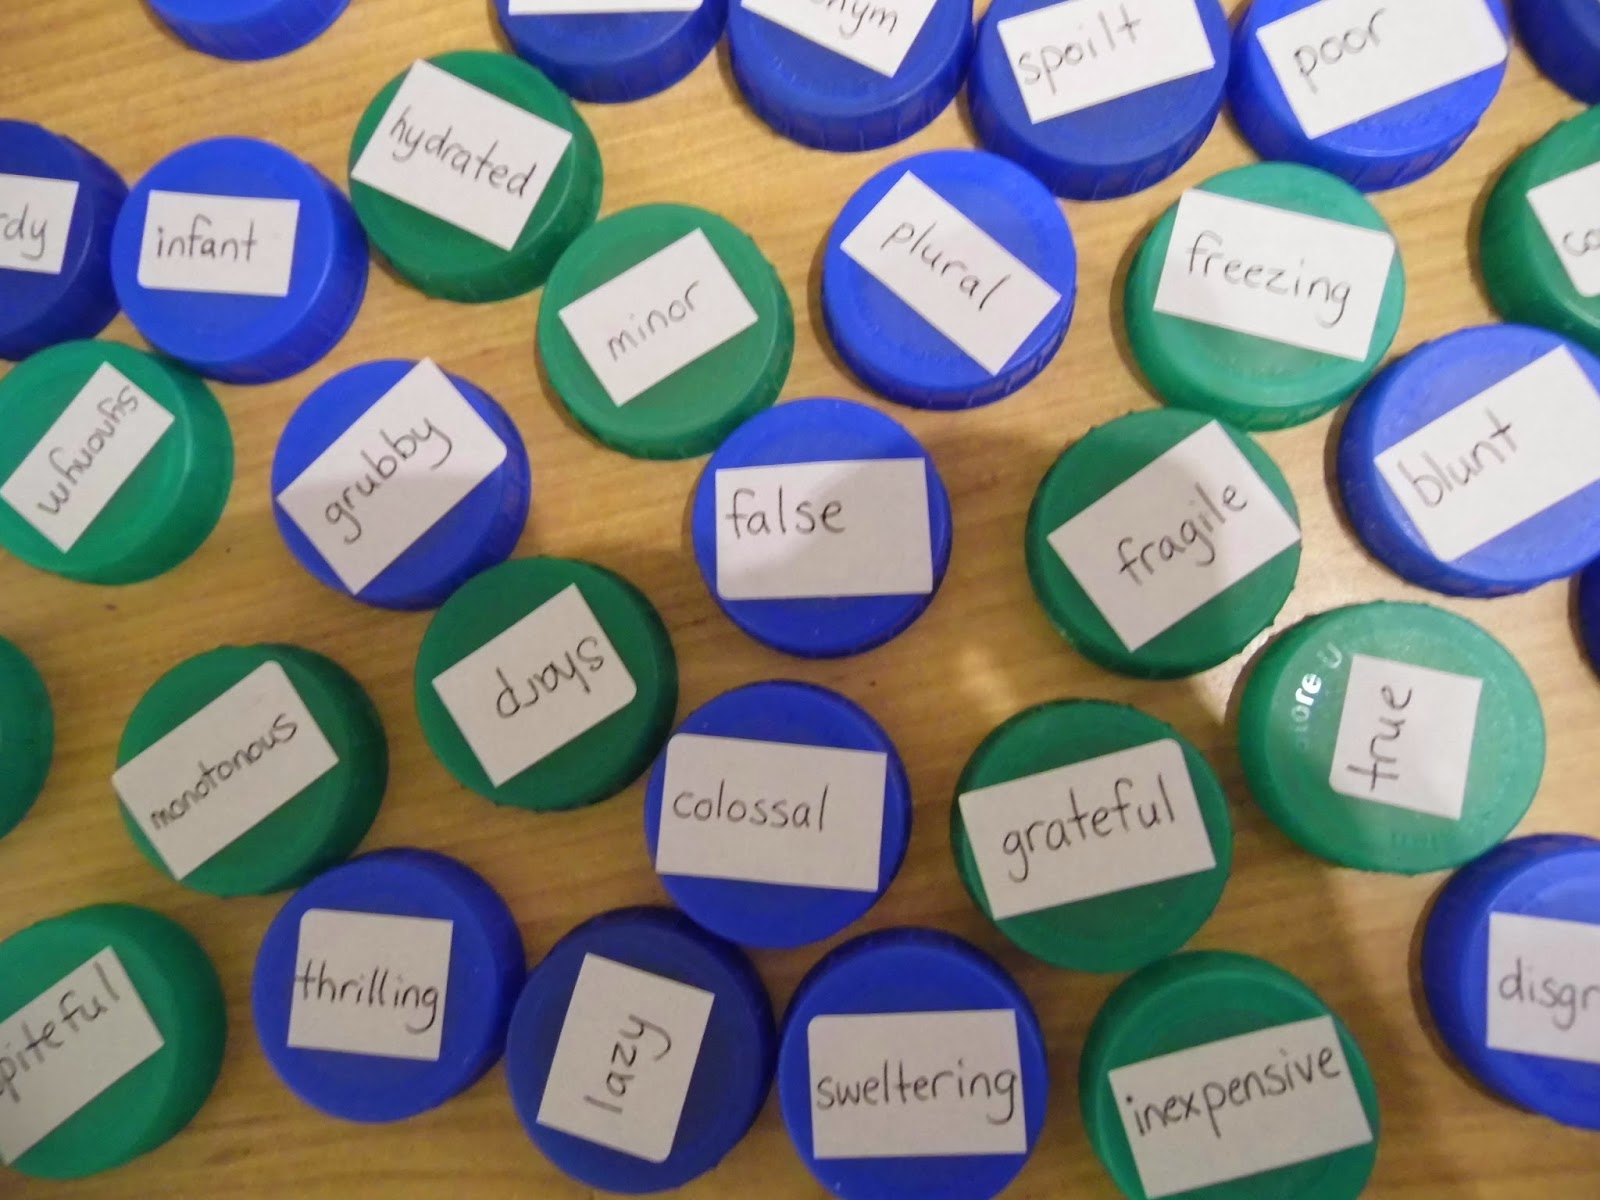 Worksheet Antonym For Simple mrs kirvars creative corner antonyms matching game the simple idea is to match up pairs as quickly you can i made some particularly tricky for a challenge so kids might need to